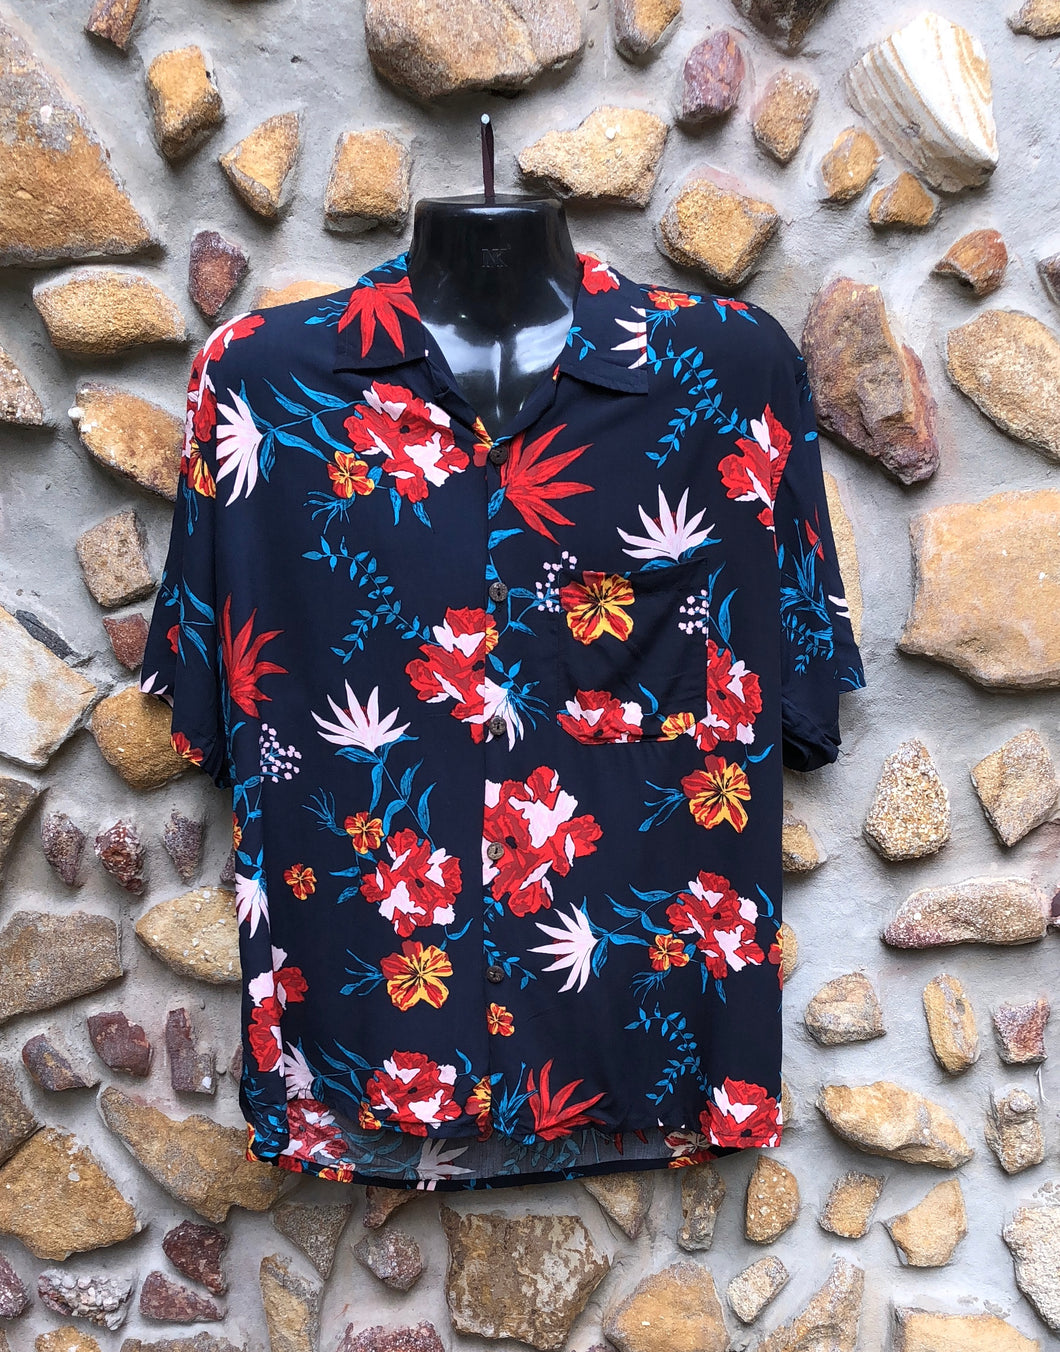 Large Love Shirt - Birds of Paradise Flowers on Navy